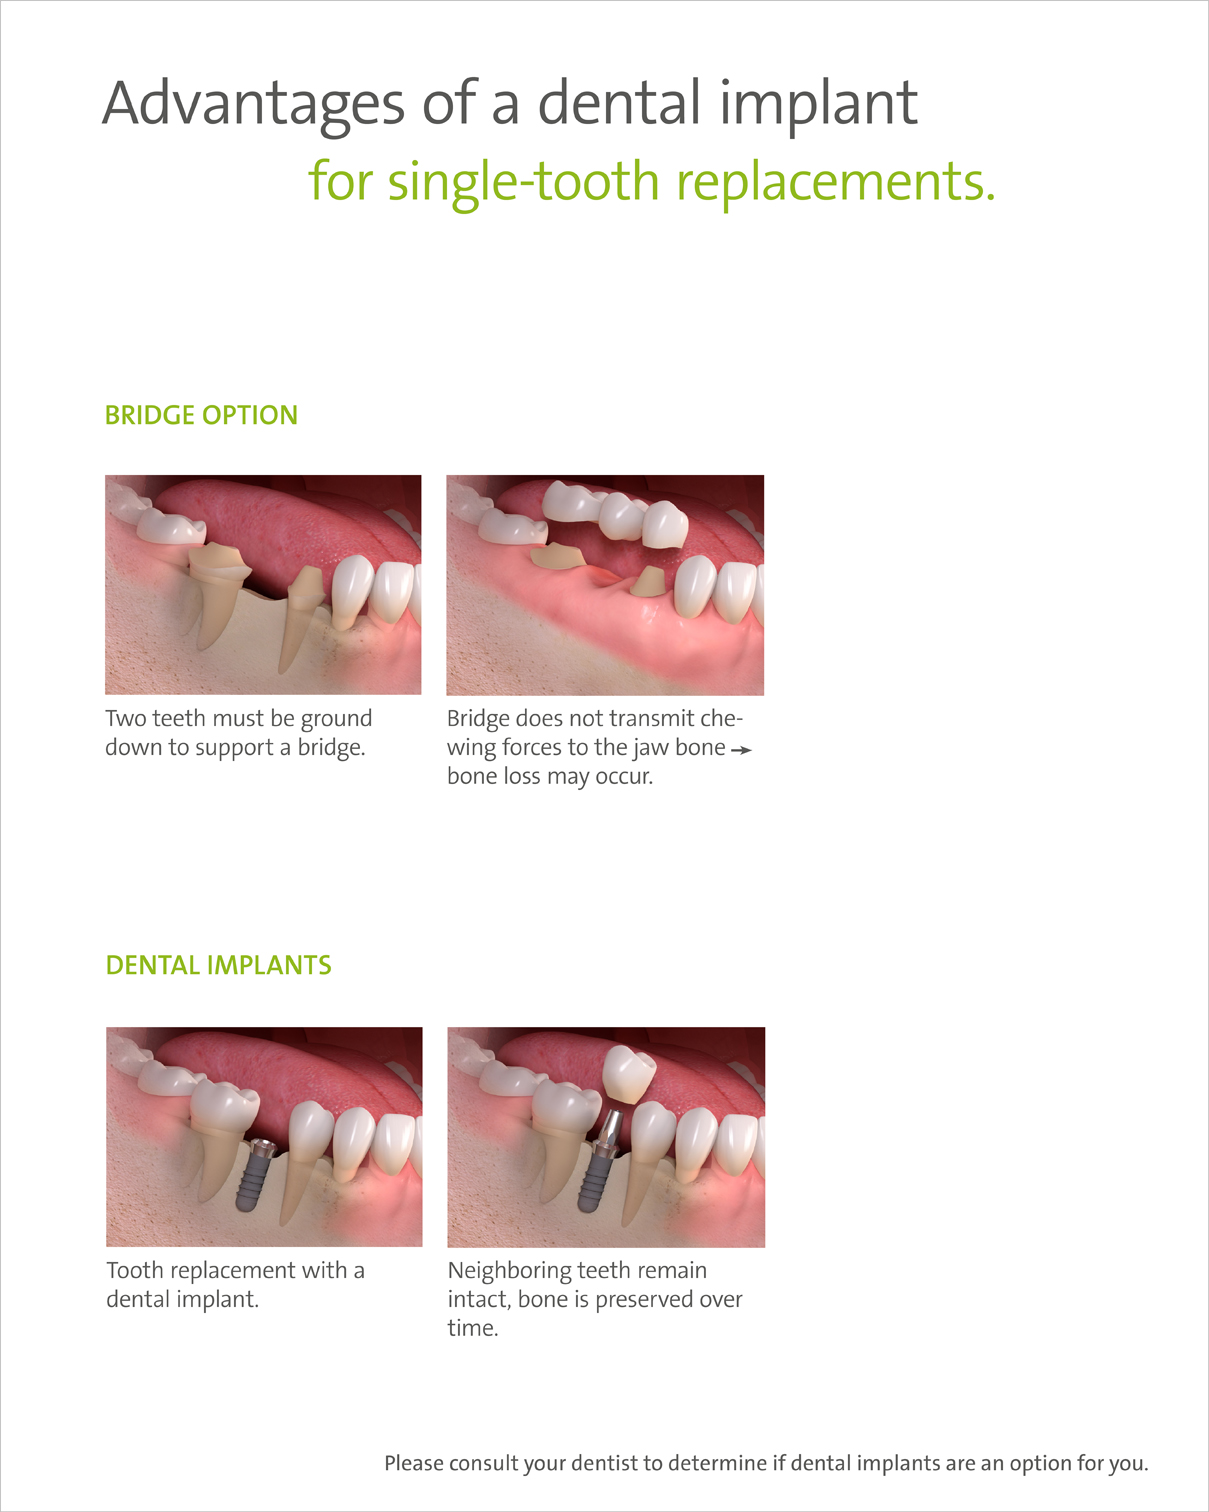 adavantages of a dental implant for single tooth replacements